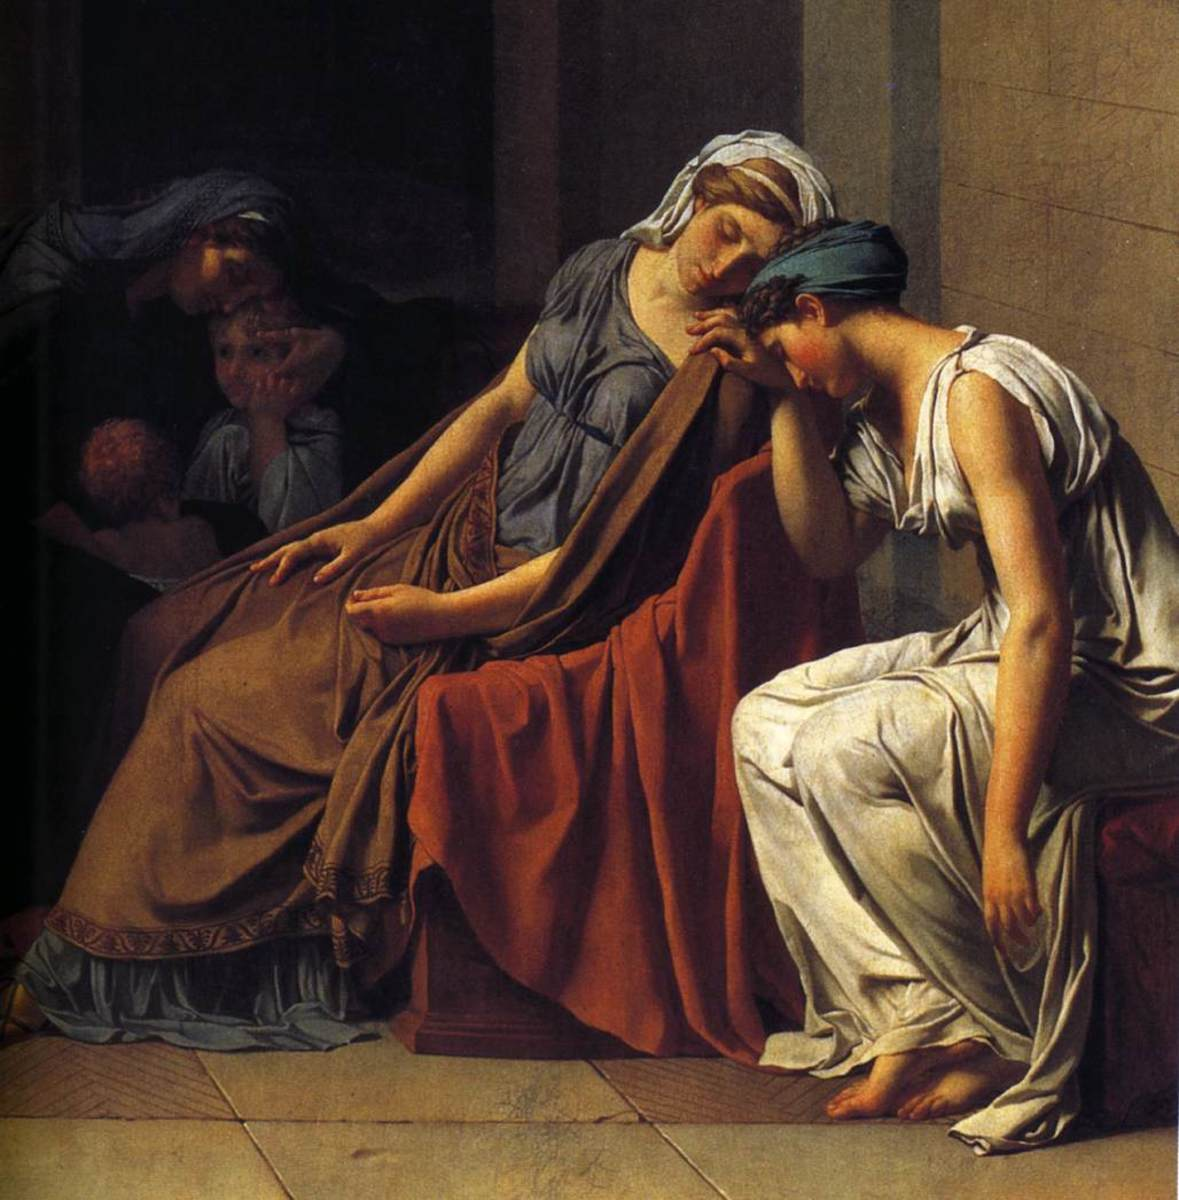 Women (detail), Jacques-Louis David, Oath of the Horatii, oil on canvas, 3.3 x 4.25m, commissioned by Louis XVI, painted in Rome, exhibited at the salon of 1785 (Musée du Louvre)